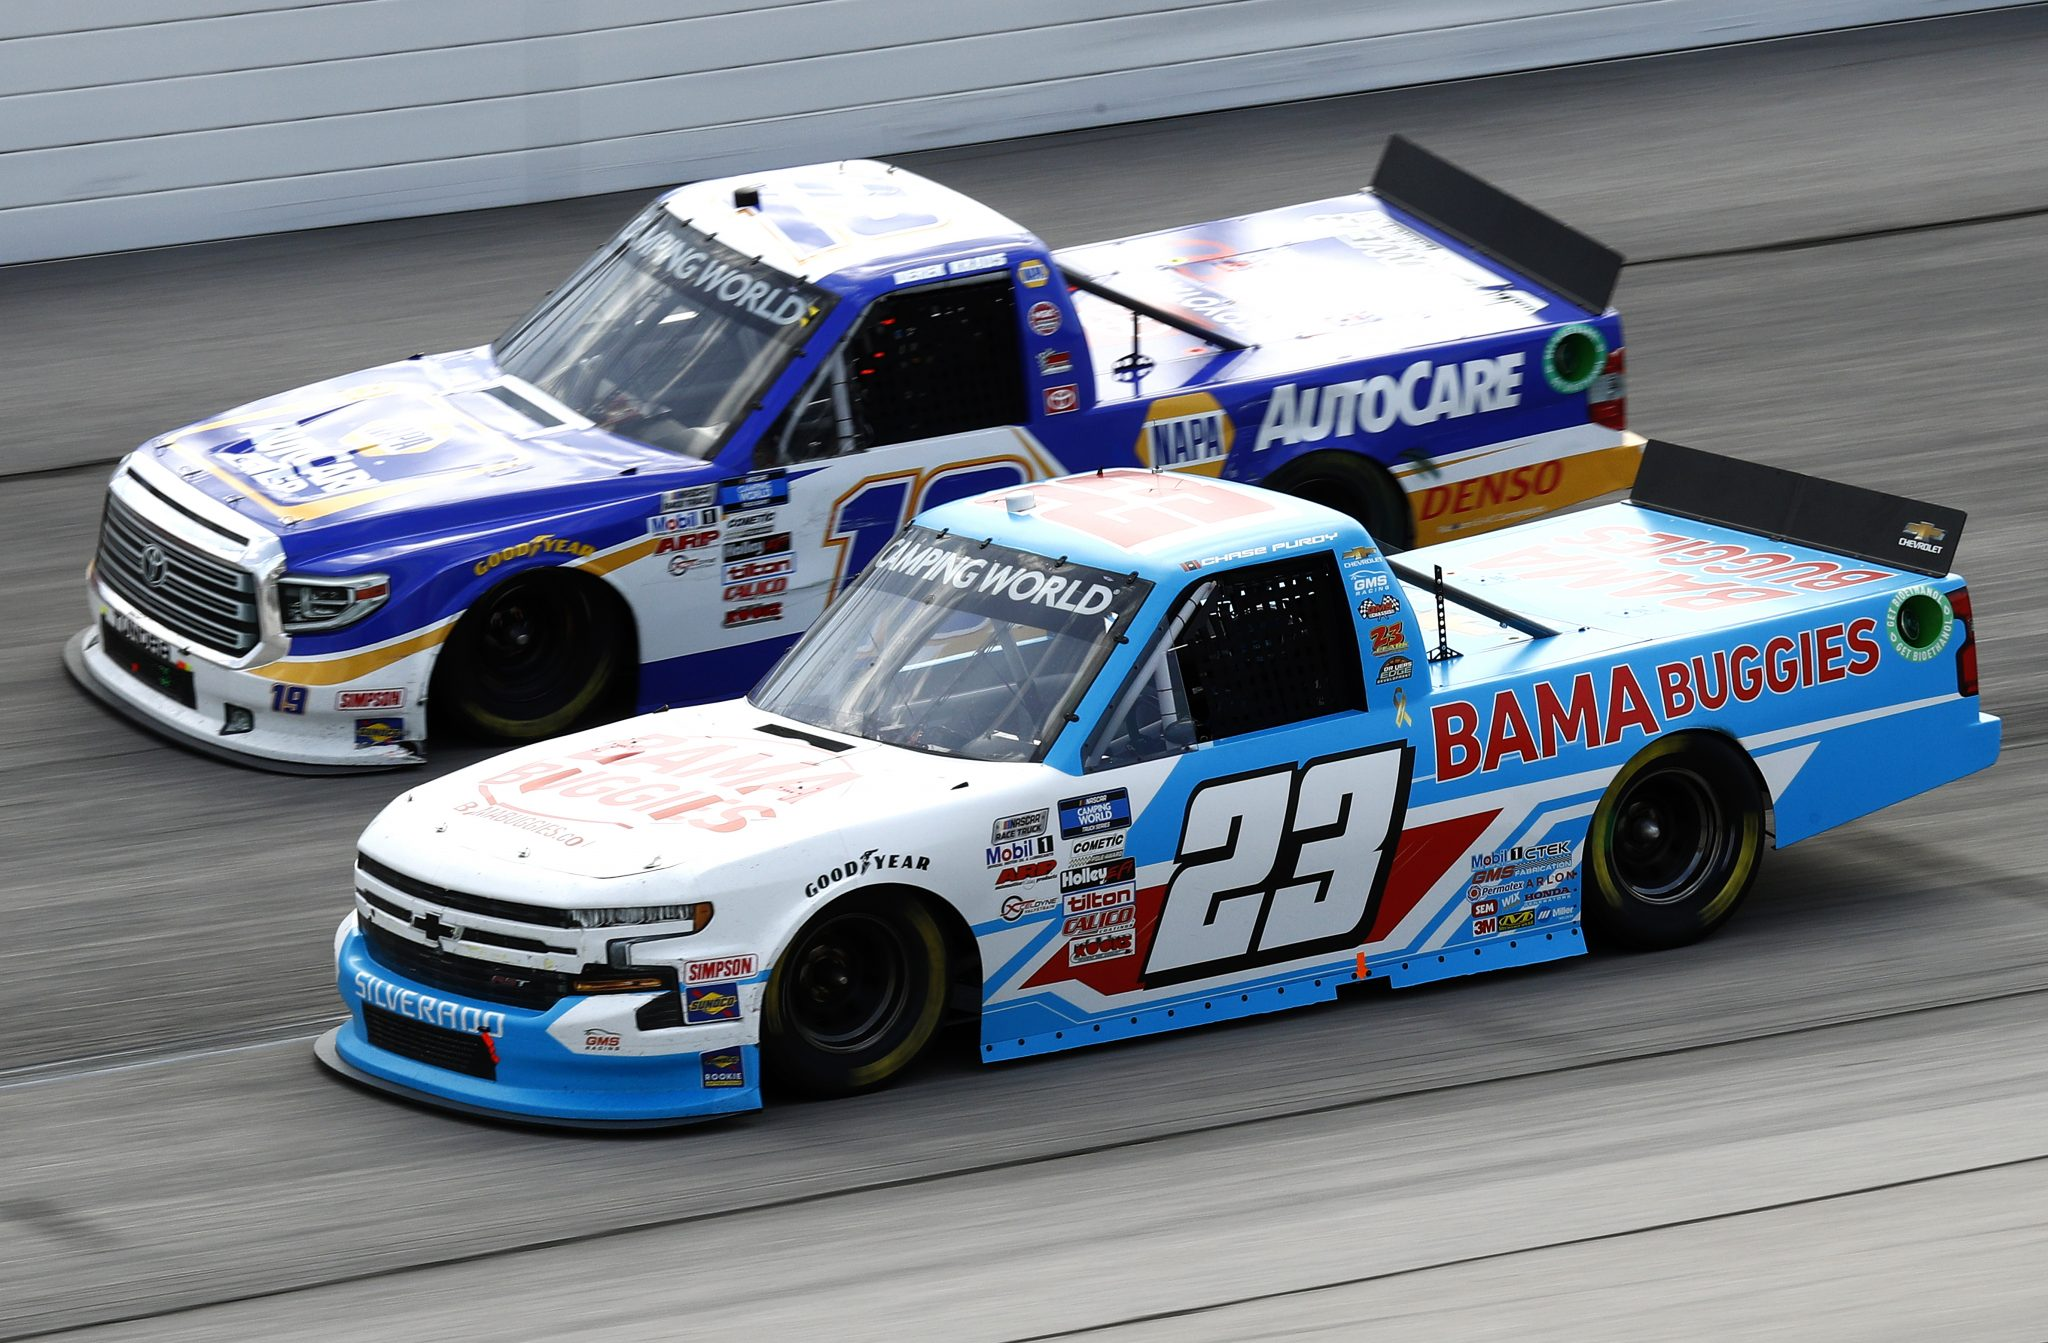 DARLINGTON, SOUTH CAROLINA - SEPTEMBER 05: Chase Purdy, driver of the #23 BamaBuggies.com Chevrolet, and Derek Kraus, driver of the #19 NAPA AutoCare Toyota, race during the NASCAR Camping World Truck Series In It To Win It 200 at Darlington Raceway on September 05, 2021 in Darlington, South Carolina. (Photo by Jared East/Getty Images)   Getty Images